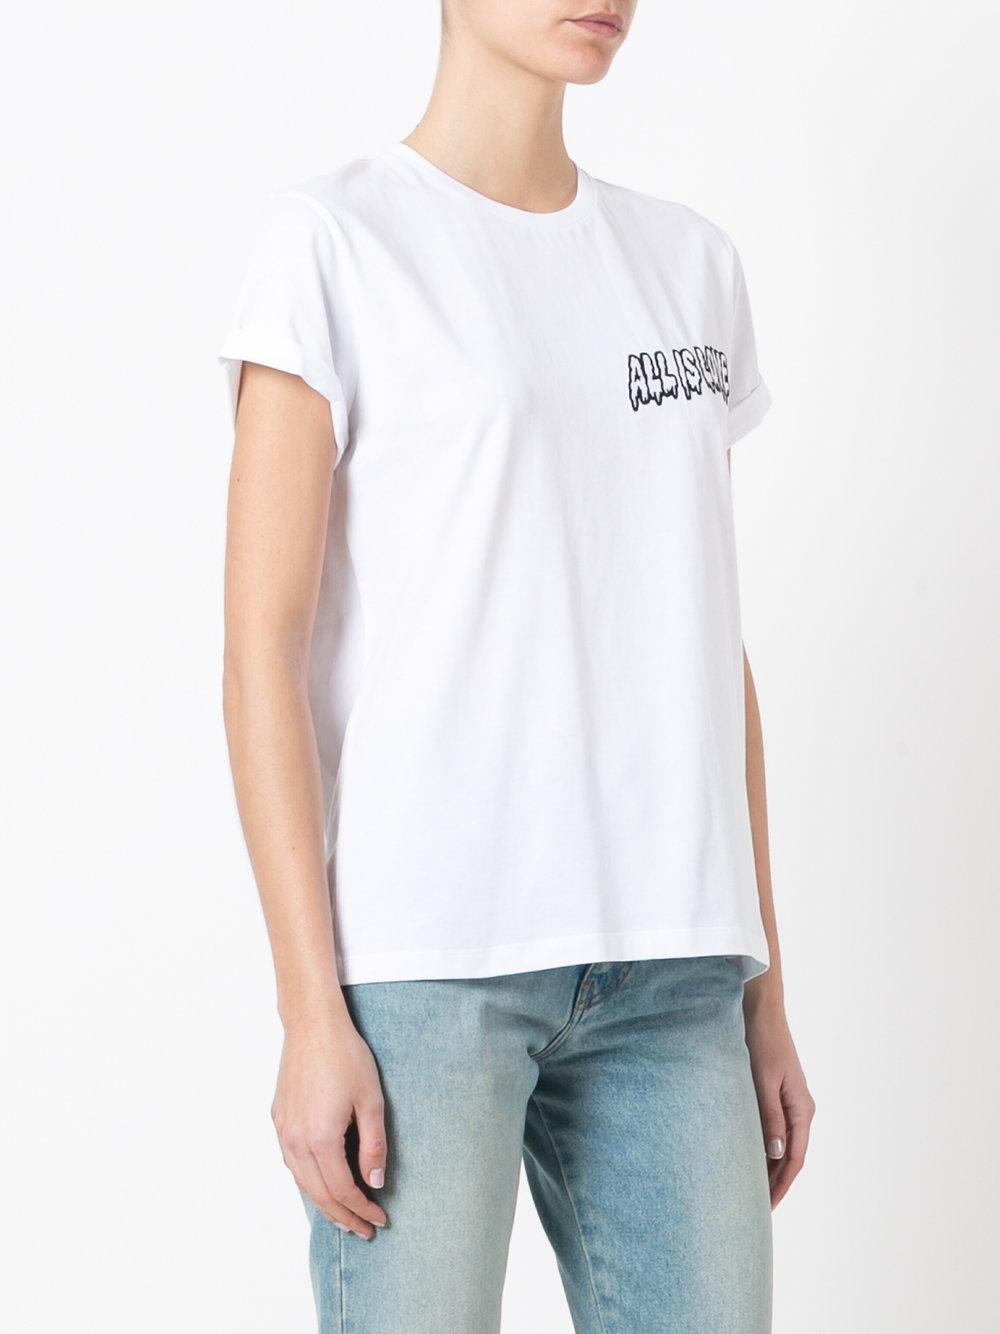 Stella mccartney all is love t shirt in white lyst for Stella mccartney t shirt